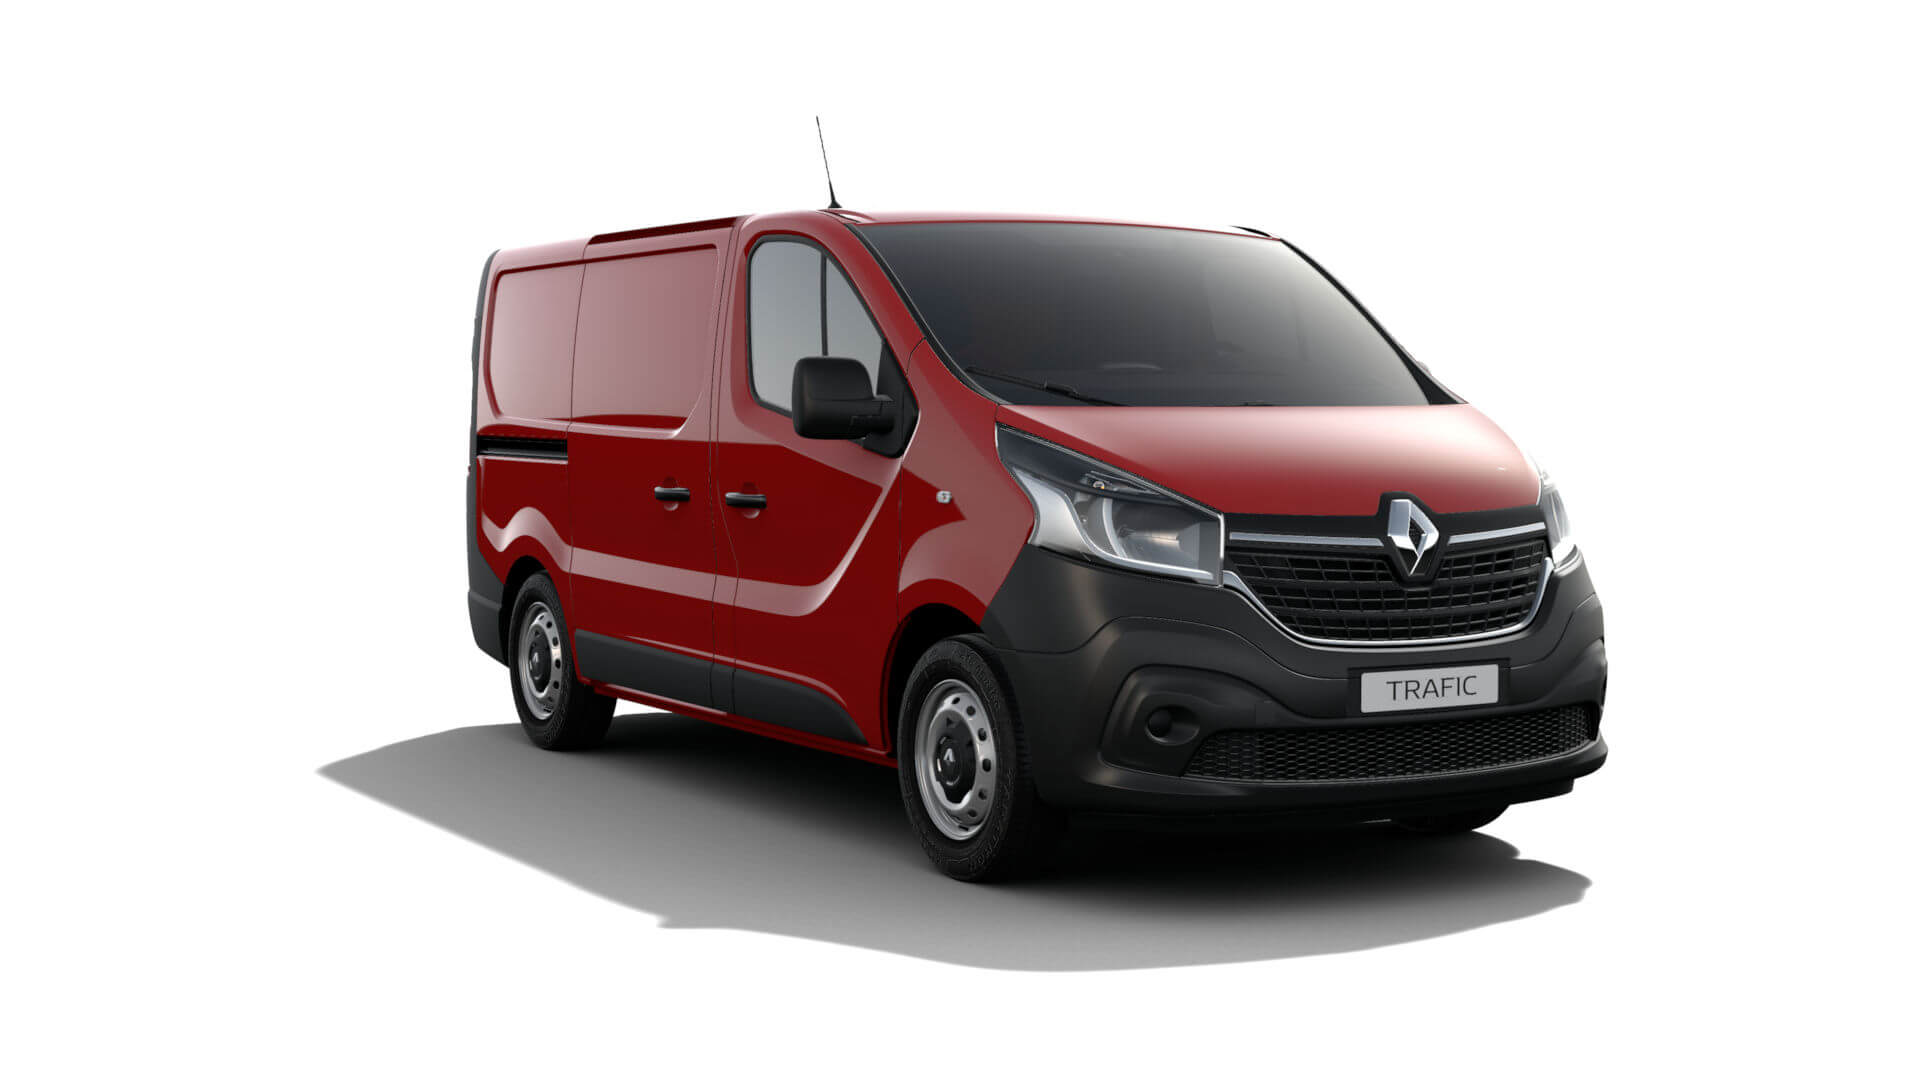 Automodell Sprinter Rot - Renault NFZ Trafic - Renault Ahrens Hannover